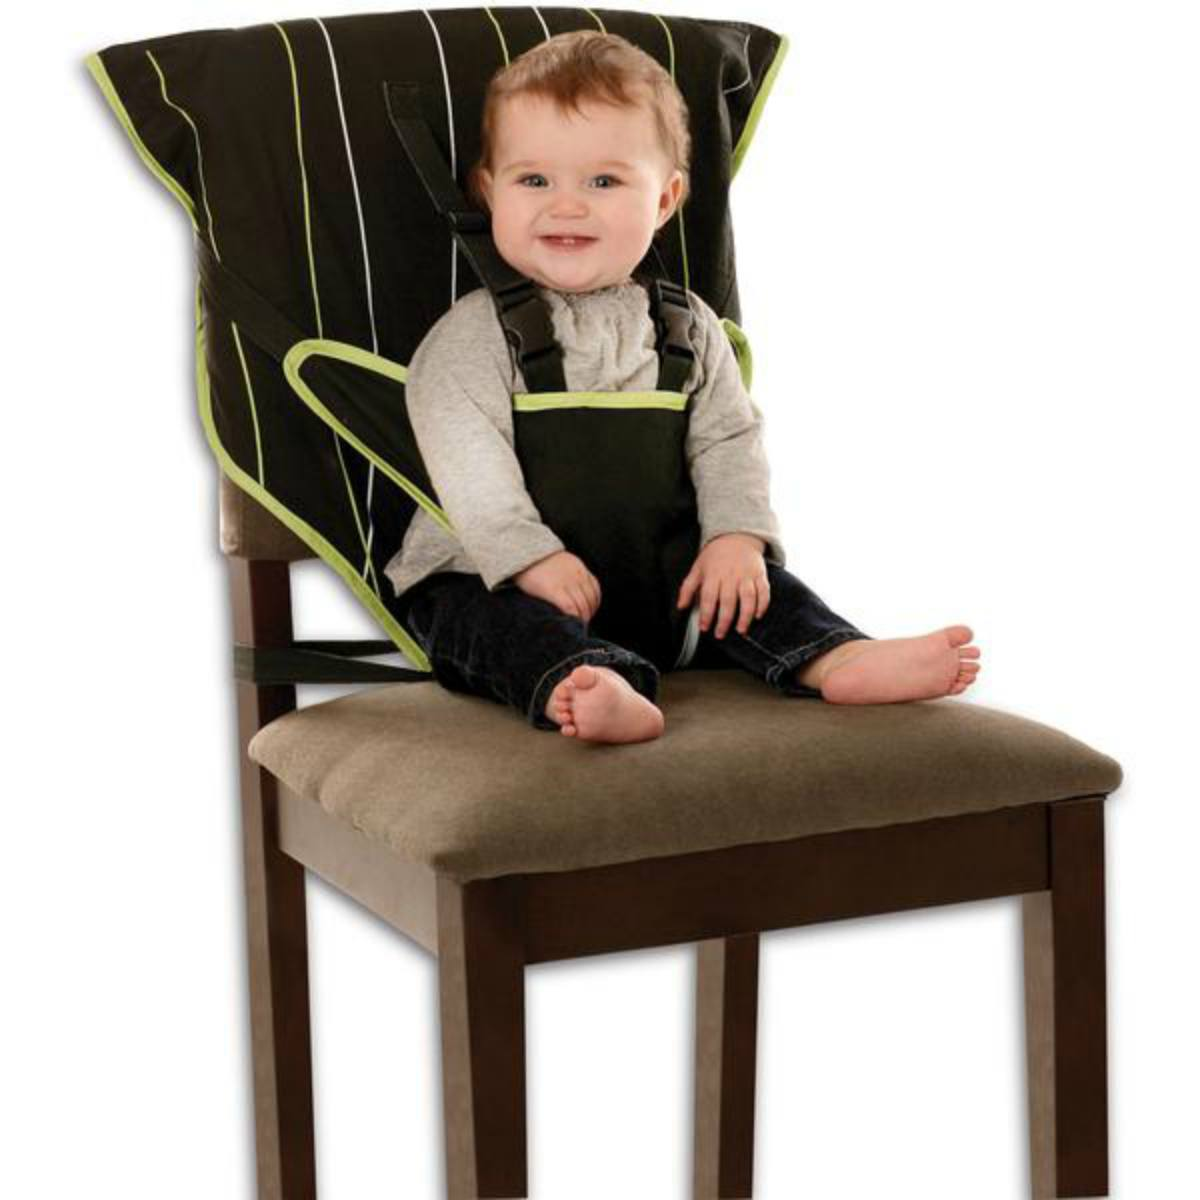 Baby Cozy Cover Easy Seat | Christmas Gift Ideas For Dad | baby first christmas gift ideas